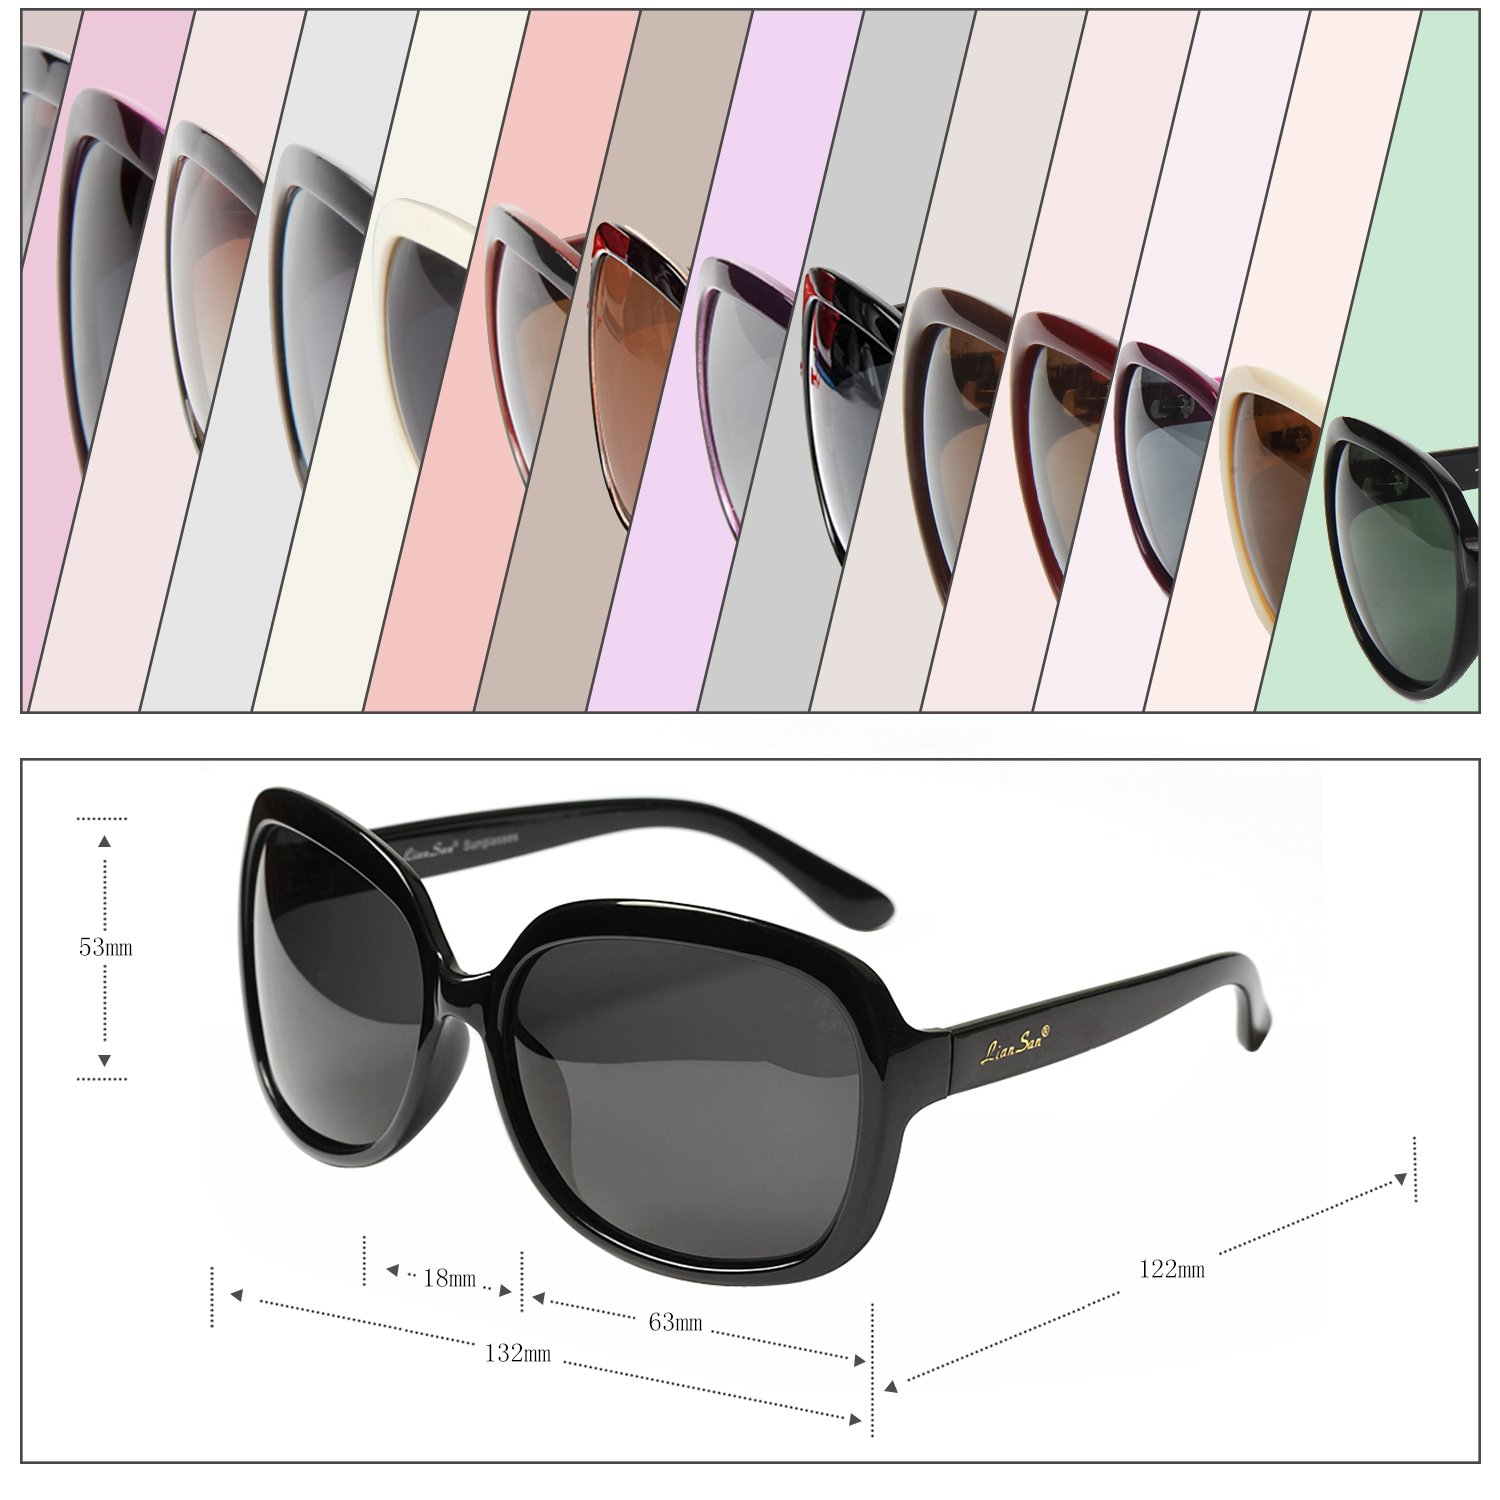 ecf3dcbed7b2a LianSan Oversized Womens Sunglasses Polarized uv Protection Simple  Sunglasses LSP301 …